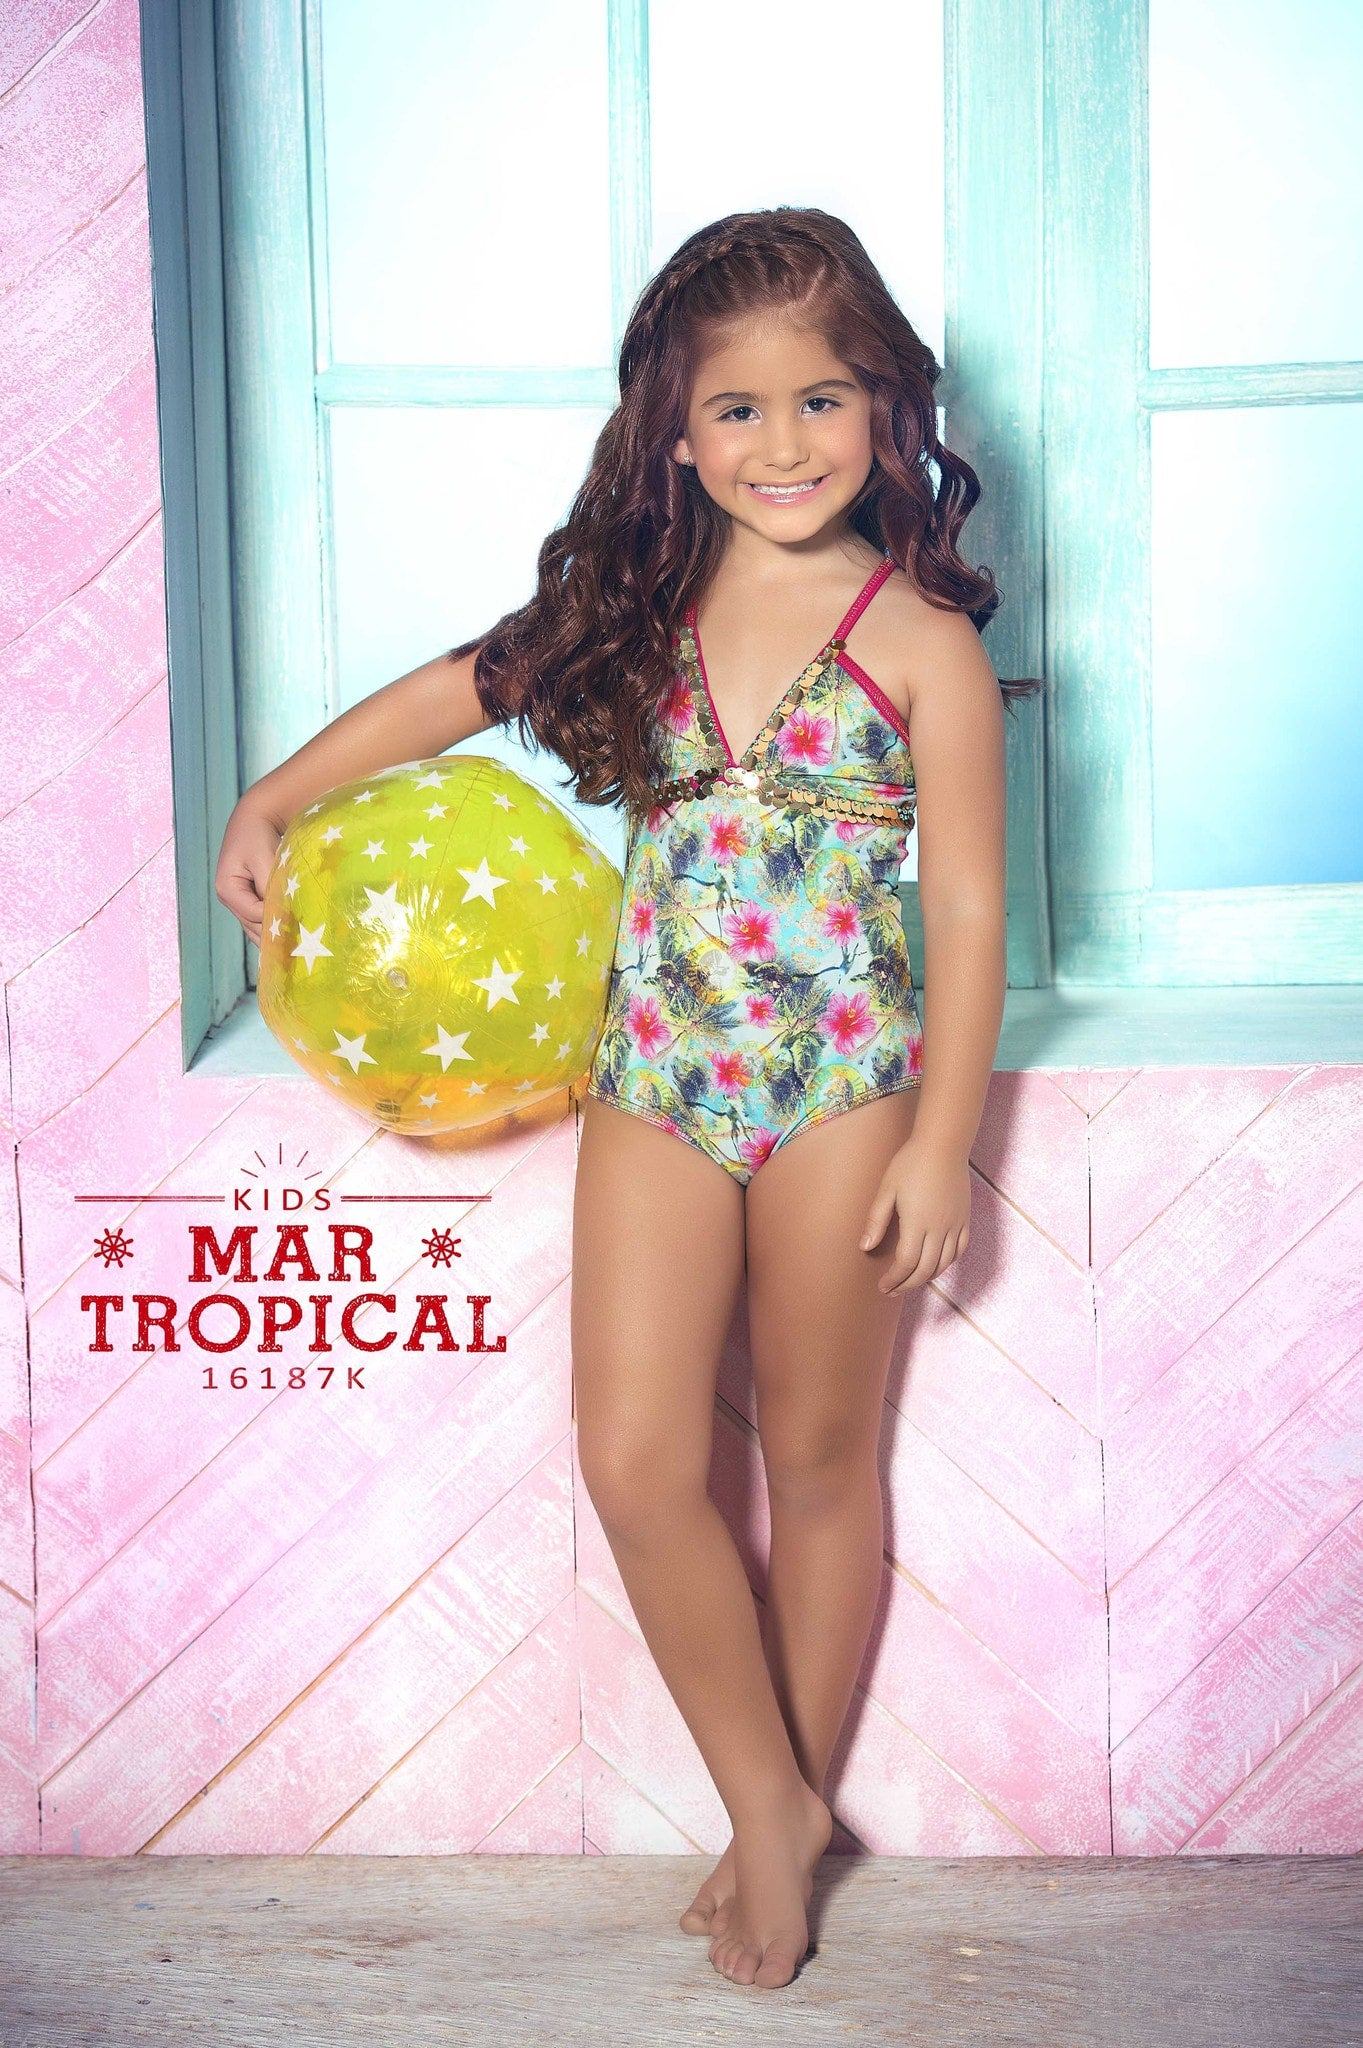 Mar De Rosas Mar Tropical High End Childrens Swimwear